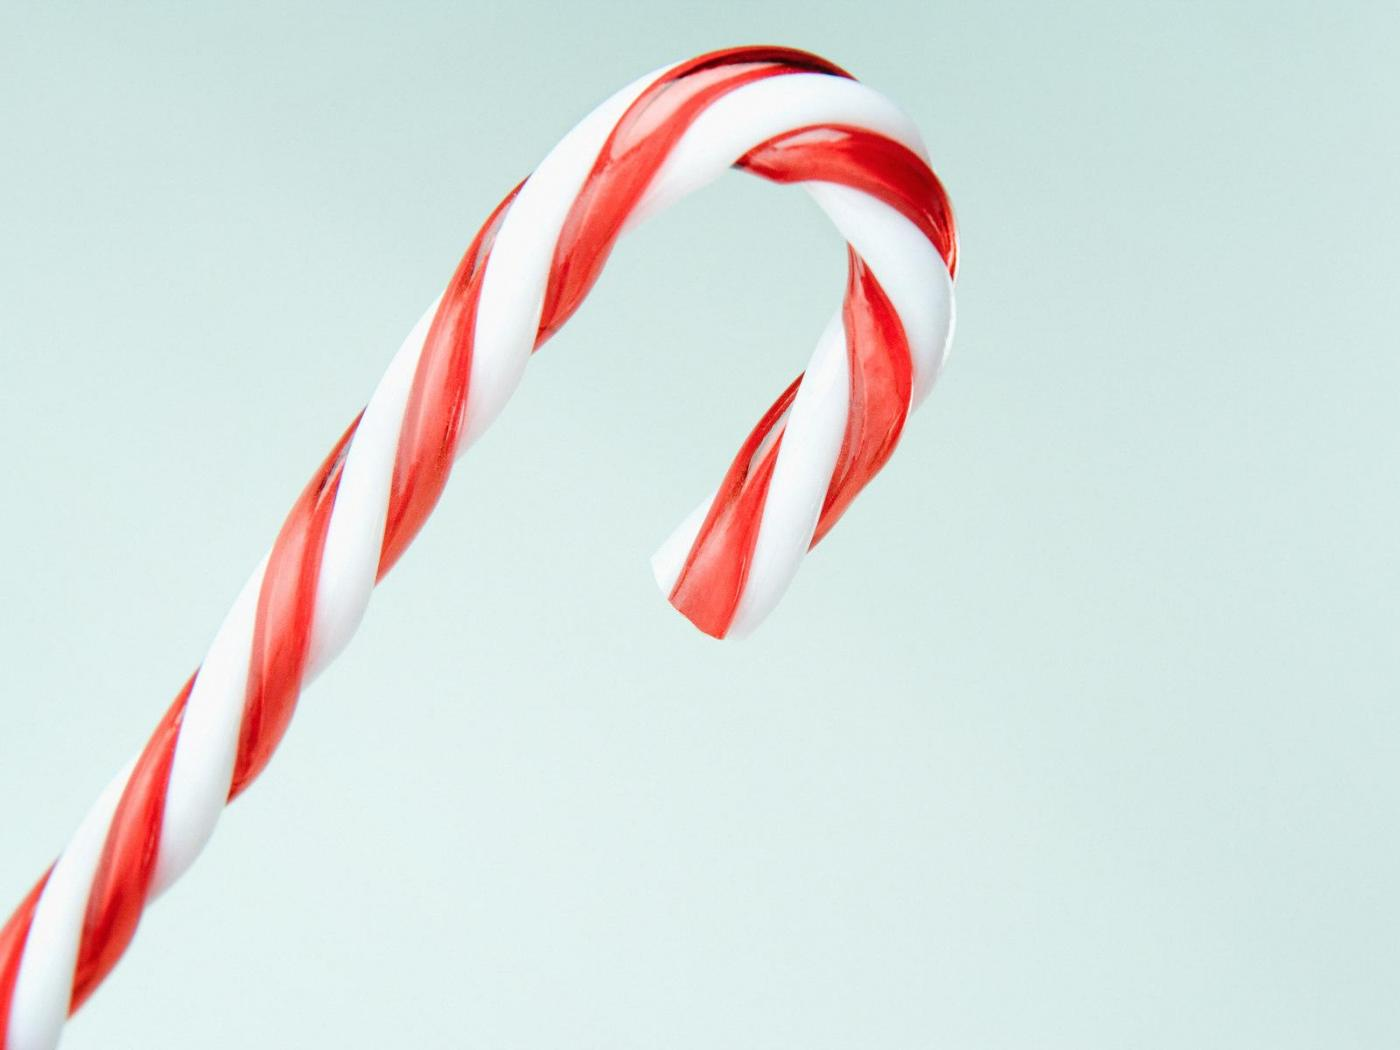 Candy Cane 1400x1050 Wallpapers 1400x1050 Wallpapers Pictures 1400x1050